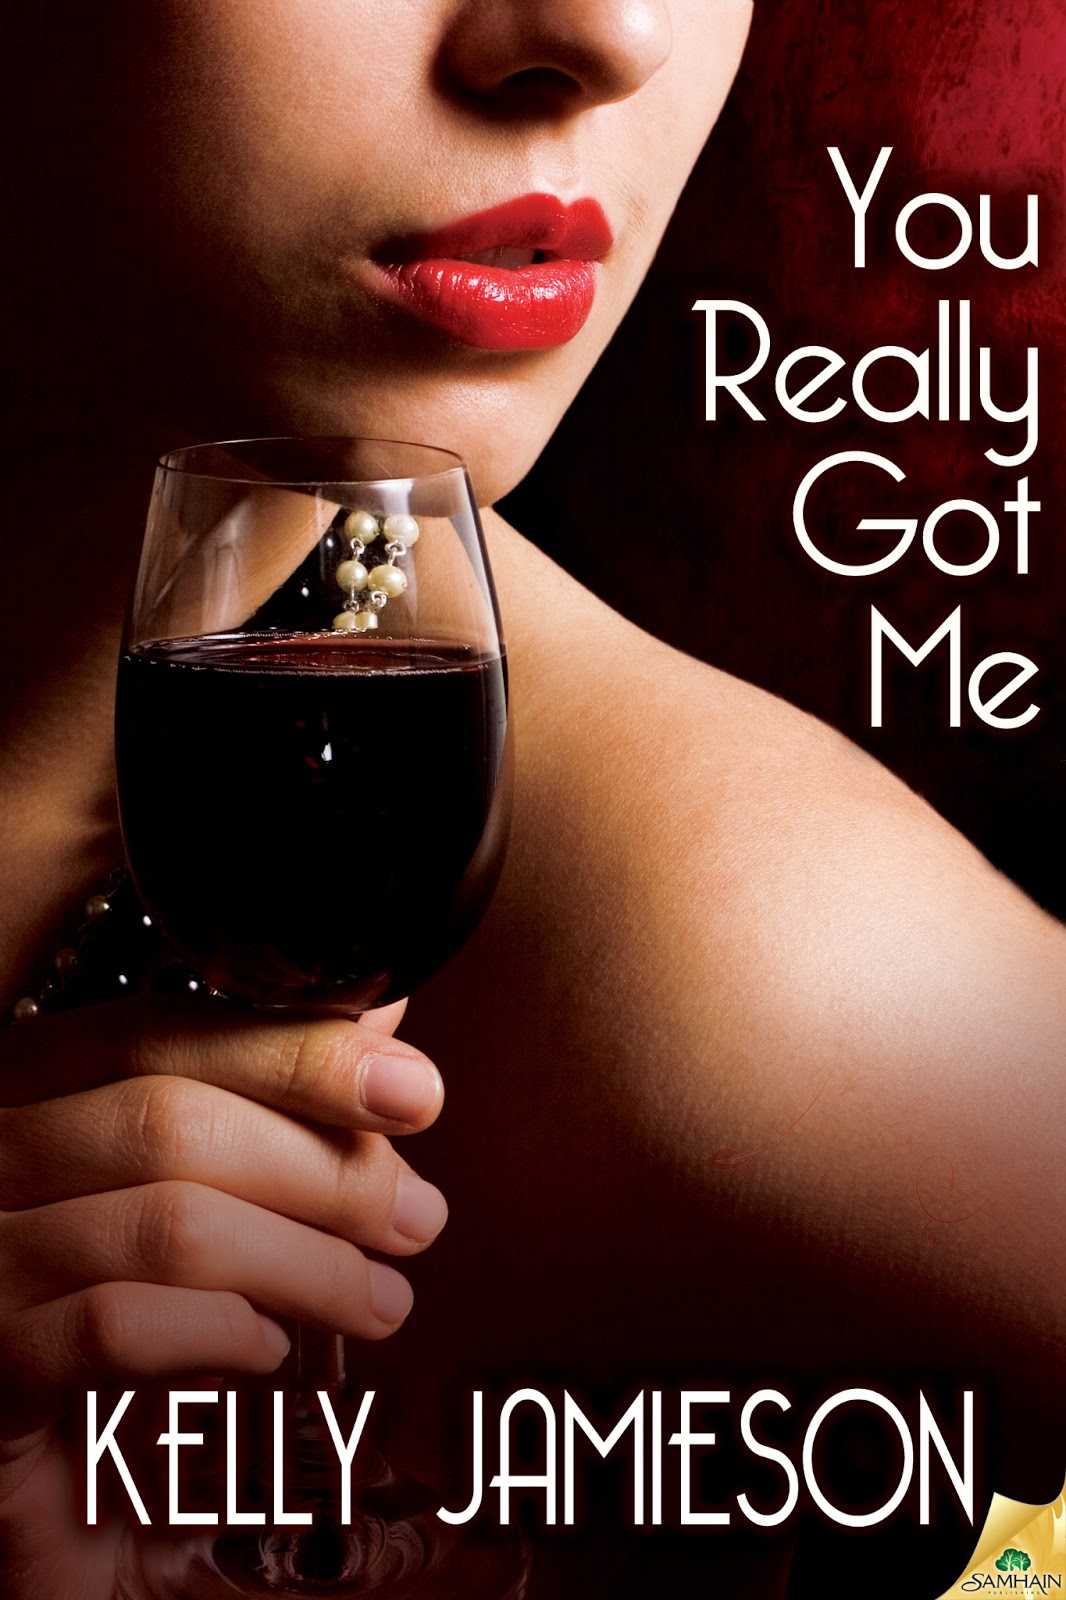 http://www.amazon.com/You-Really-Got-Kelly-Jamieson-ebook/dp/B00FARYN7O/ref=sr_1_1?ie=UTF8&qid=1390171141&sr=8-1&keywords=you+really+got+me+kelly+jamieson